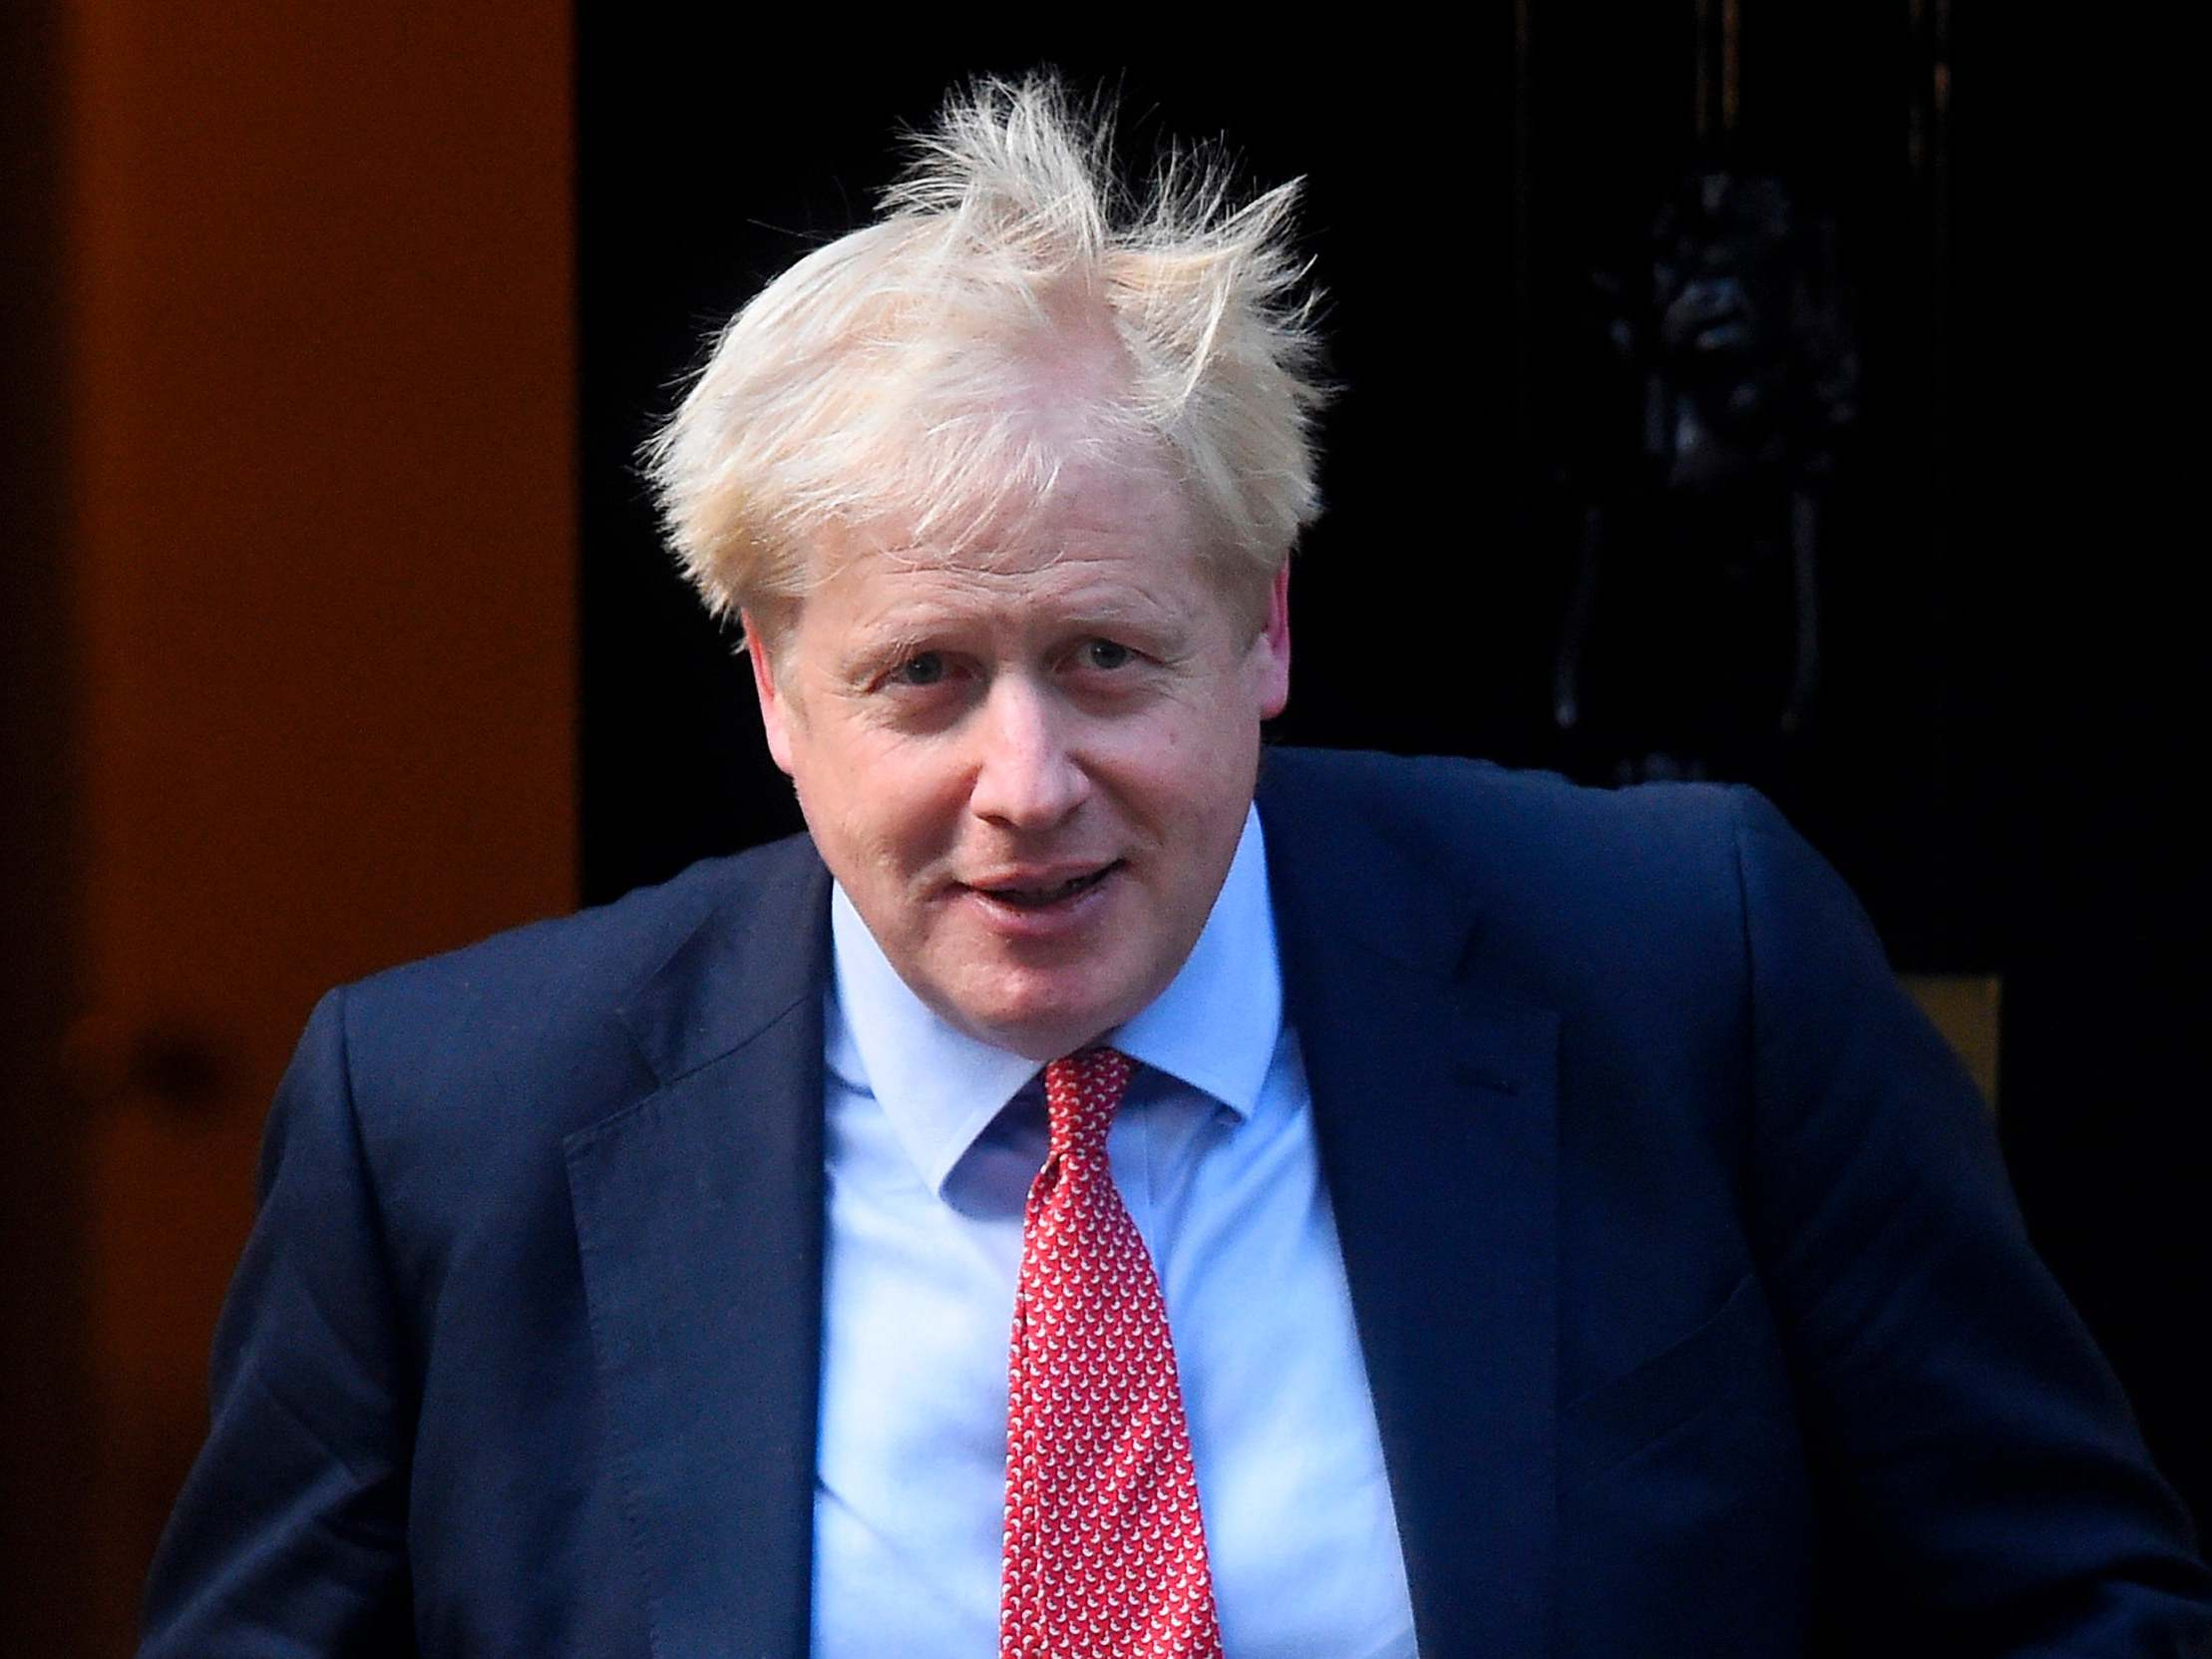 DUP dismisses Brexit breakthrough 'nonsense' as Boris Johnson braces for humiliating extension request letter